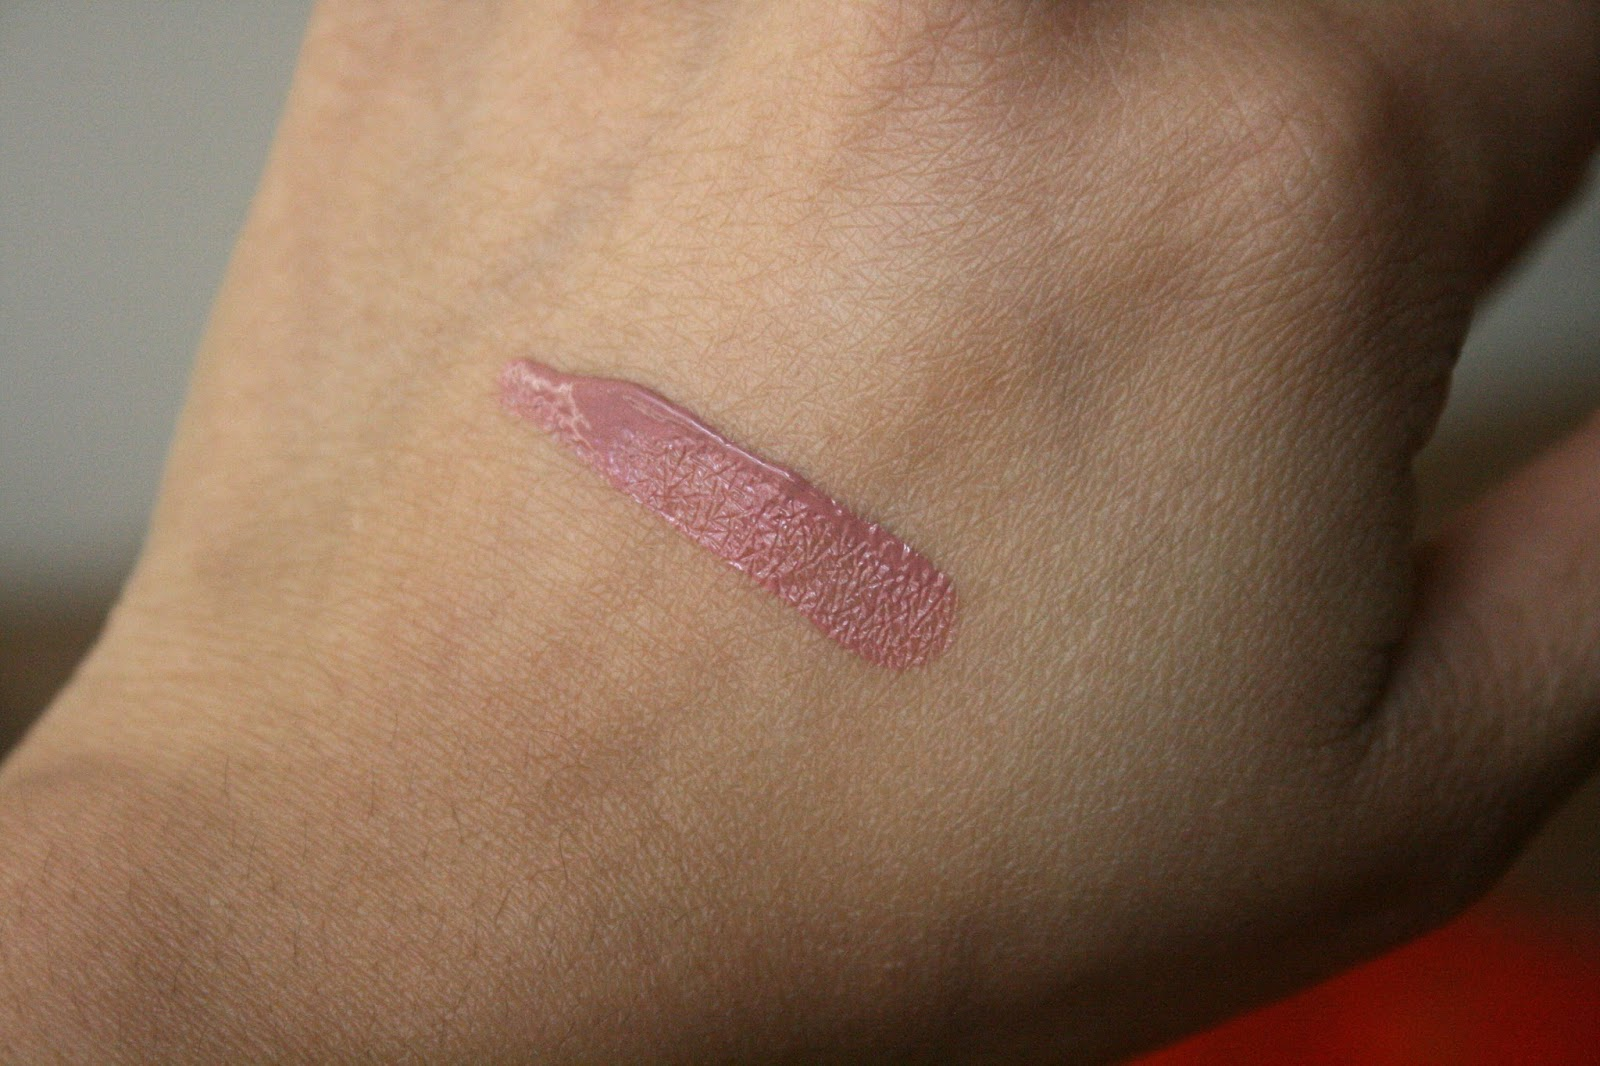 Laura Mercier Paint Wash Liquid Lip Color in Nude Rose Swatch